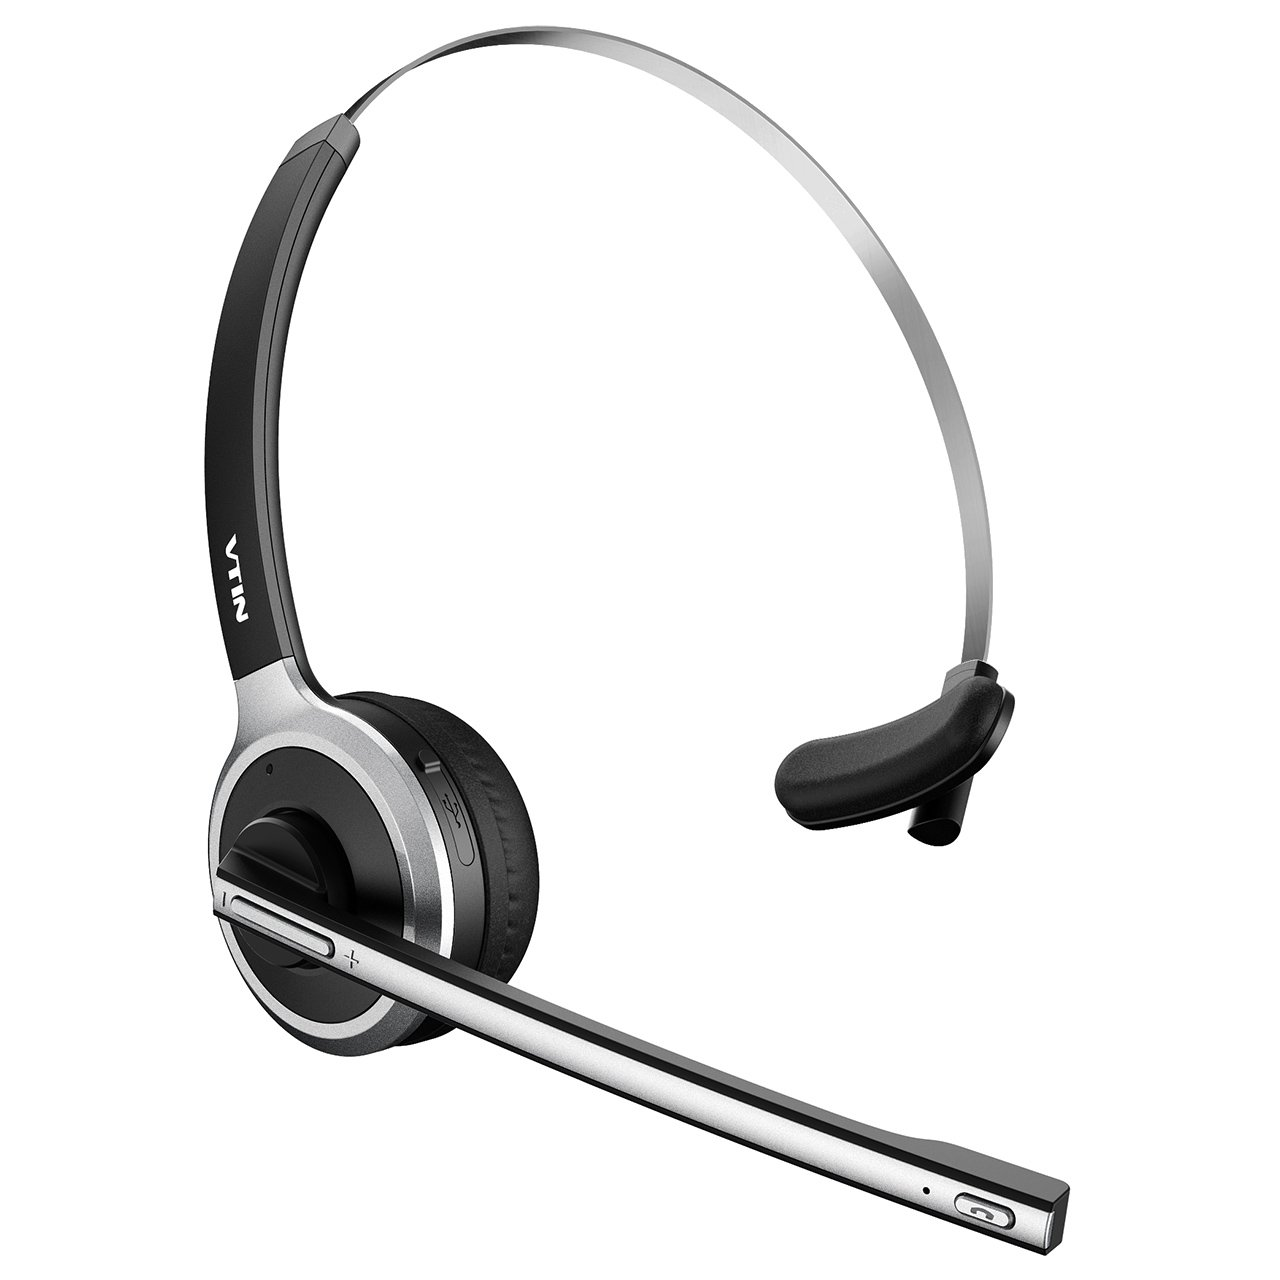 Vtin Bluetooth Headset with Microphone, Wireless Headset Computer Headphone Lightweight and Hands-Free with Mic, Stereo Over-The-Head Business Headset for Skype, Call Center, PC, Phone, Mac OTVNBH078AB-5